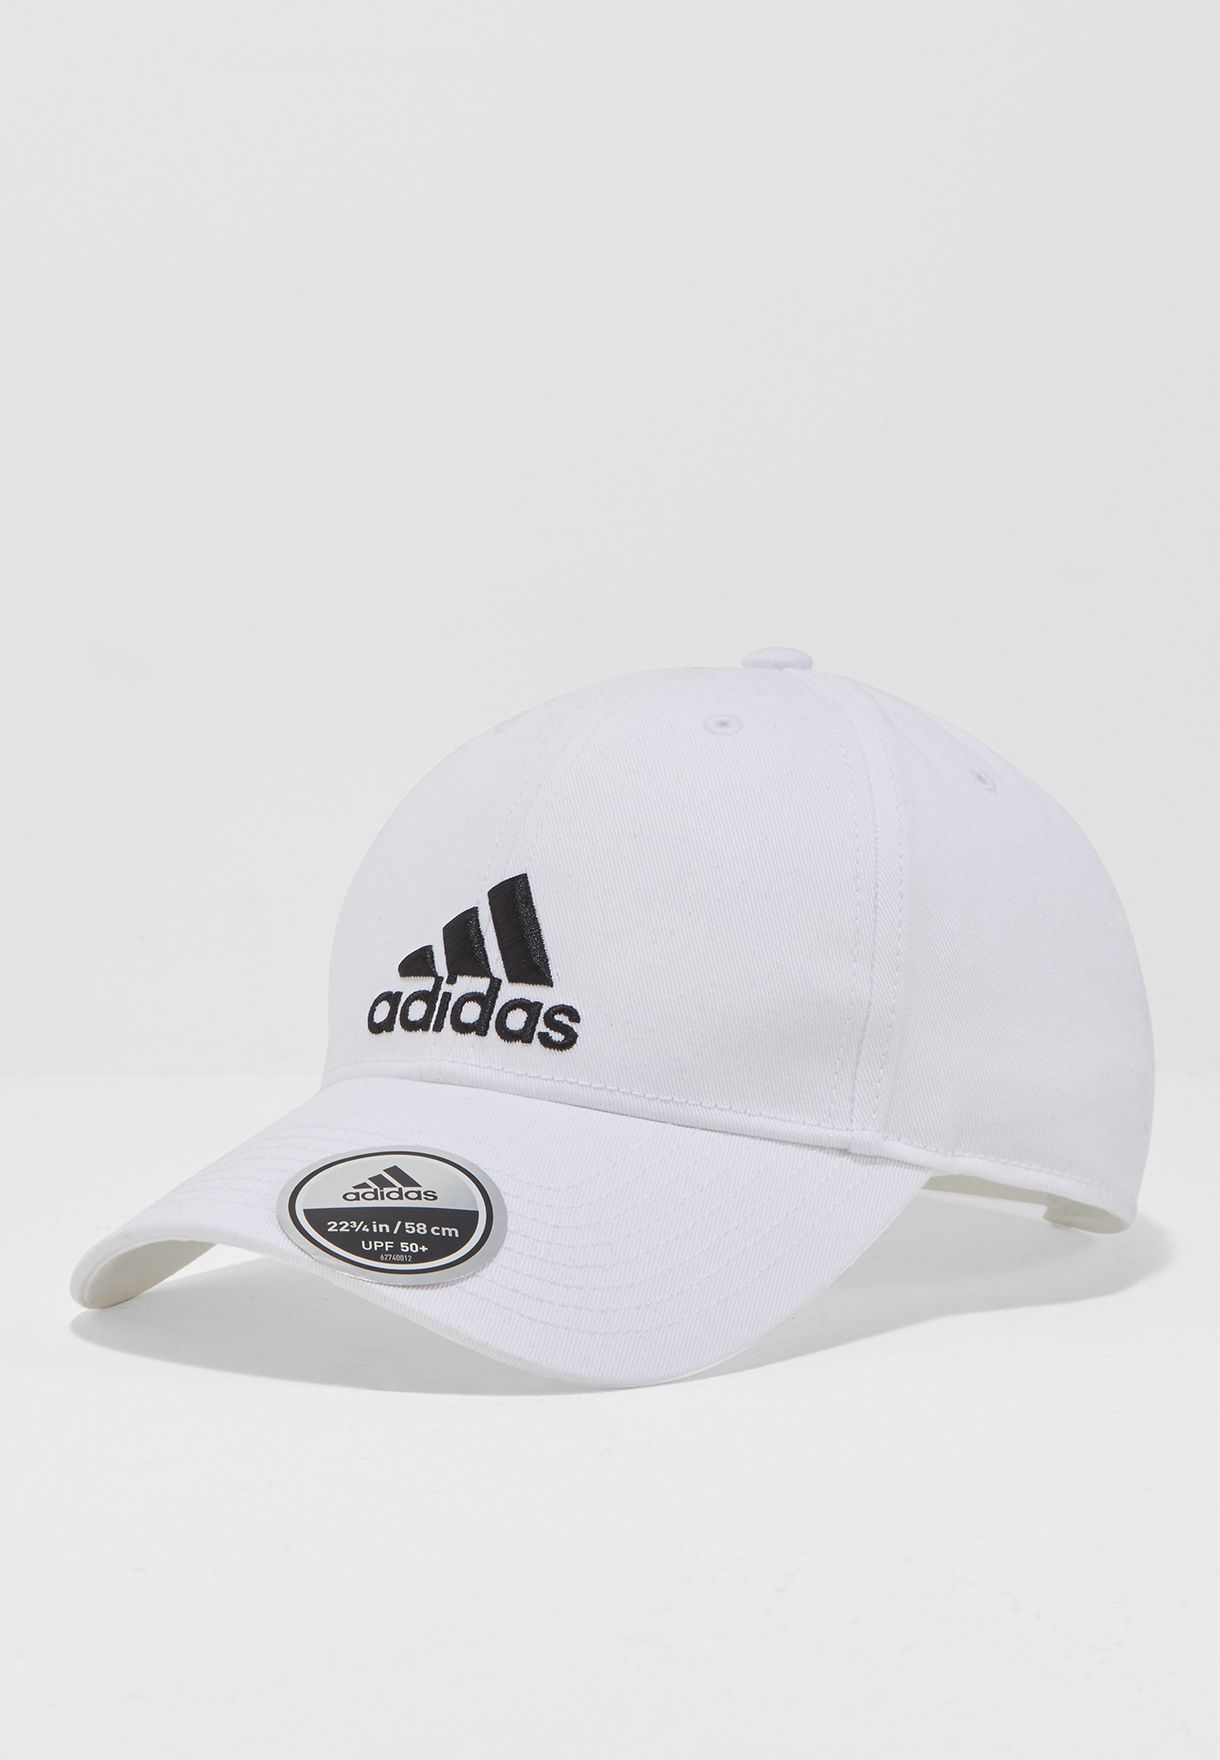 Shop adidas white Classic 6 Panel Cap S98150 for Men in Oman - AD476AC63JMY 48d1291c1a5